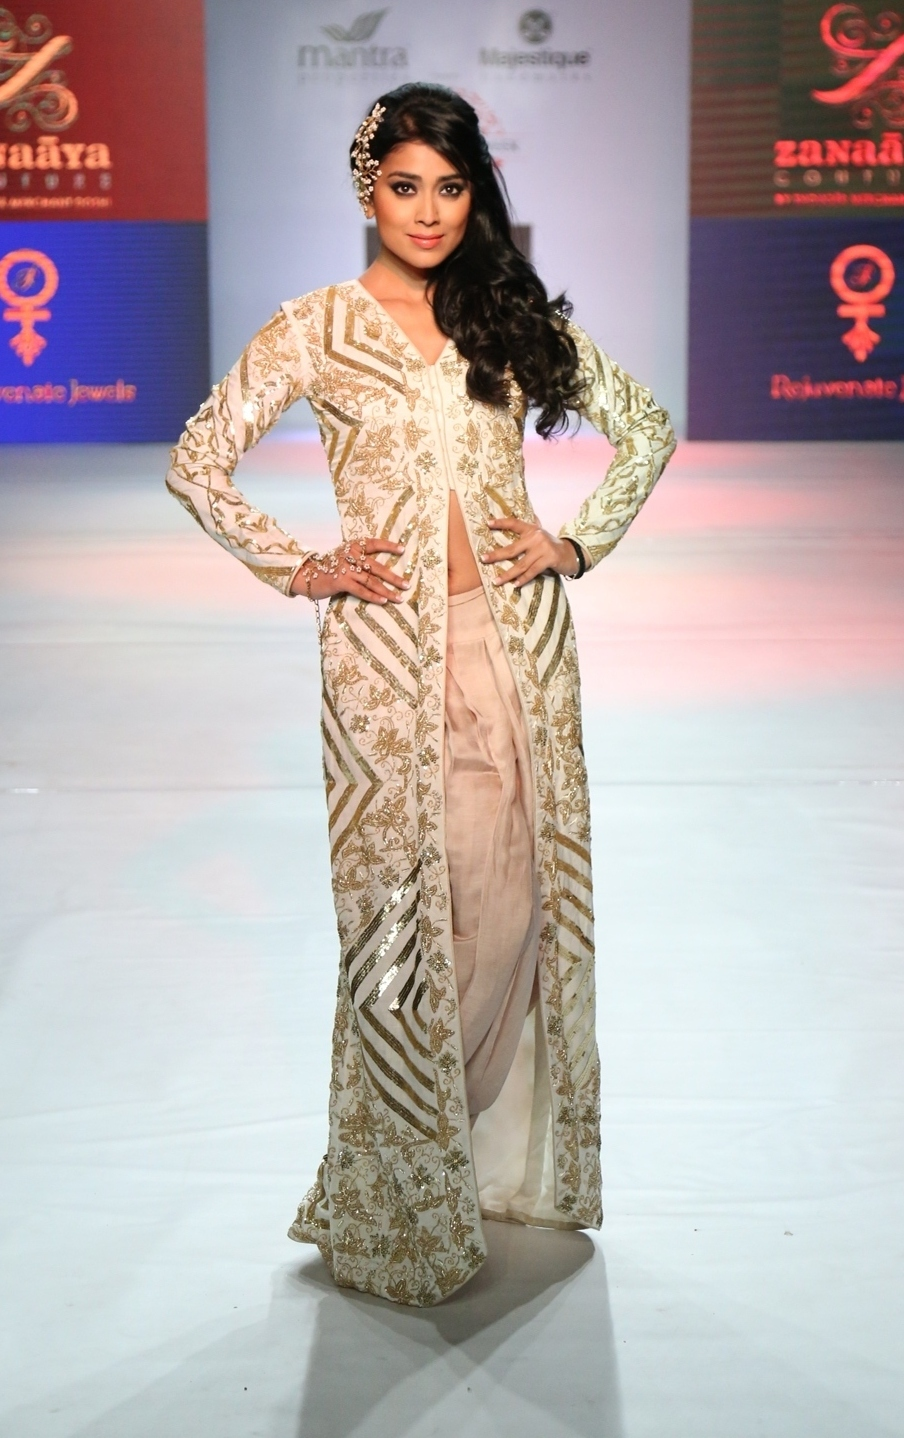 Pune Fashion Week 2014 - Shriya Saran for Shouger Merchant Doshi